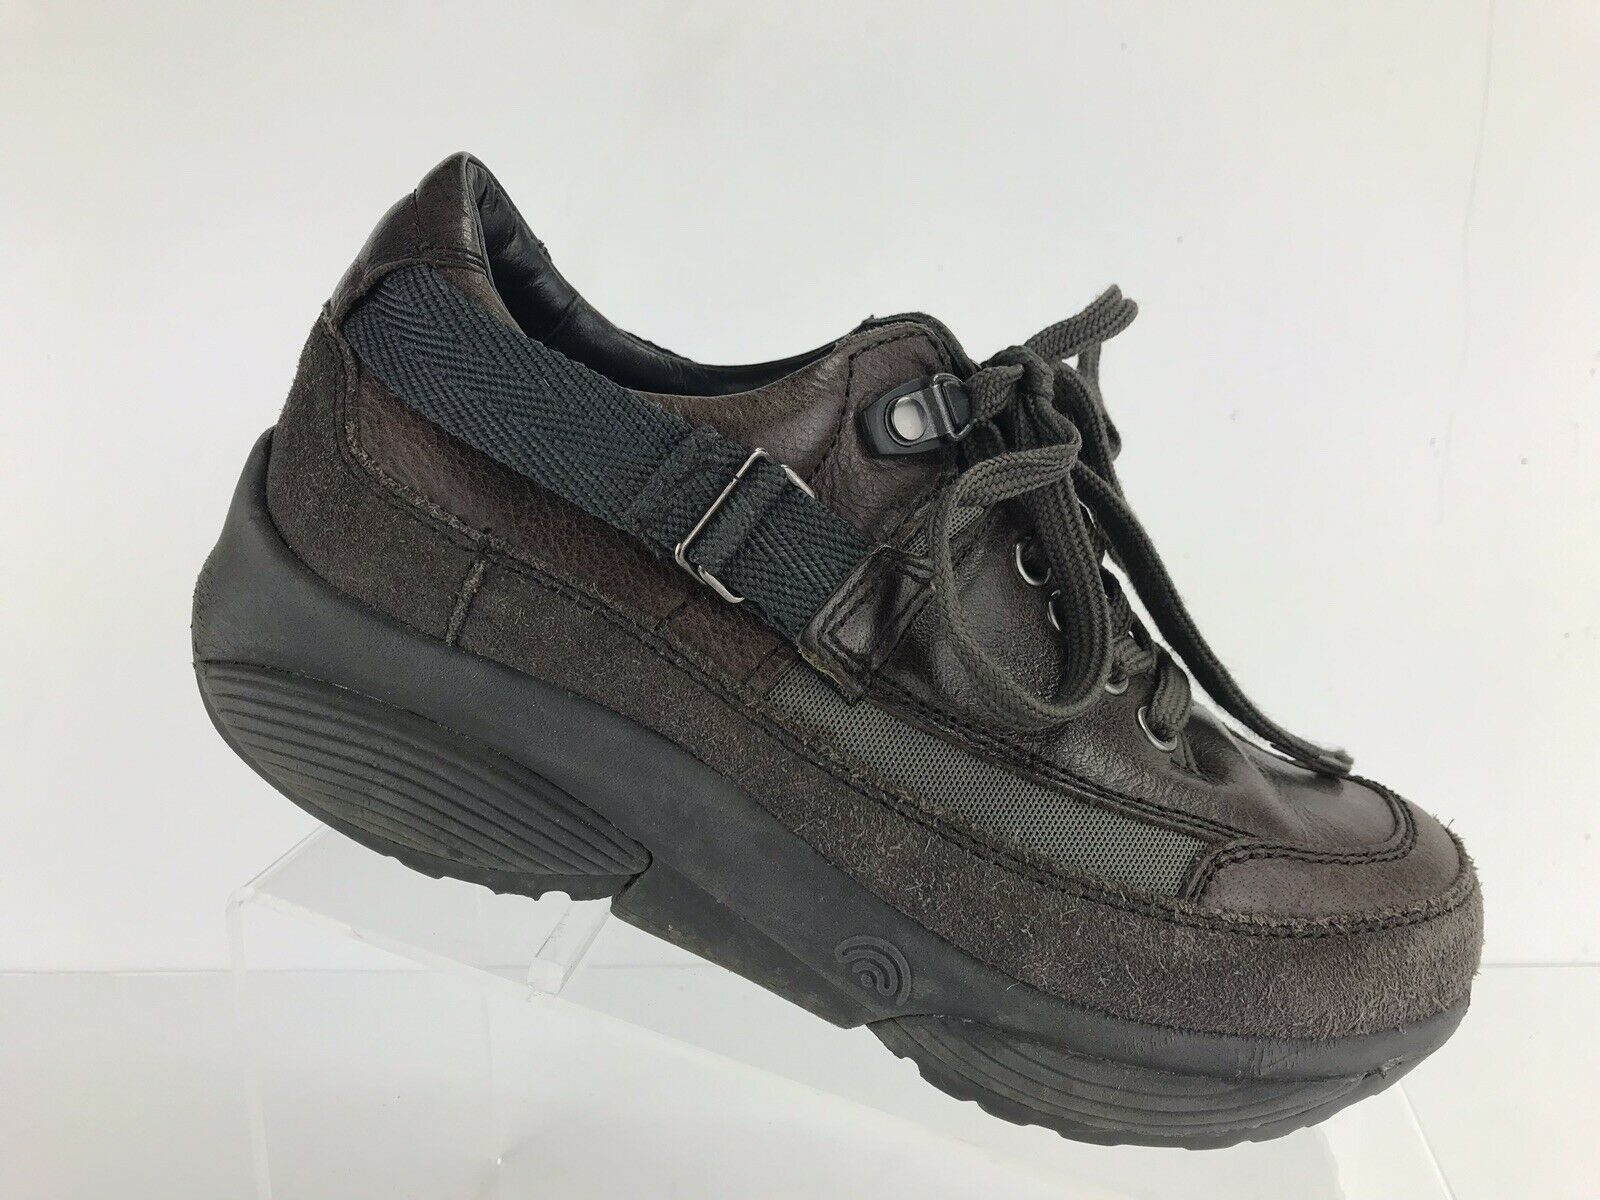 Xsensible Stretch Walker Black Comfort Diabetic Walking shoes Women's Sz 38 7.5